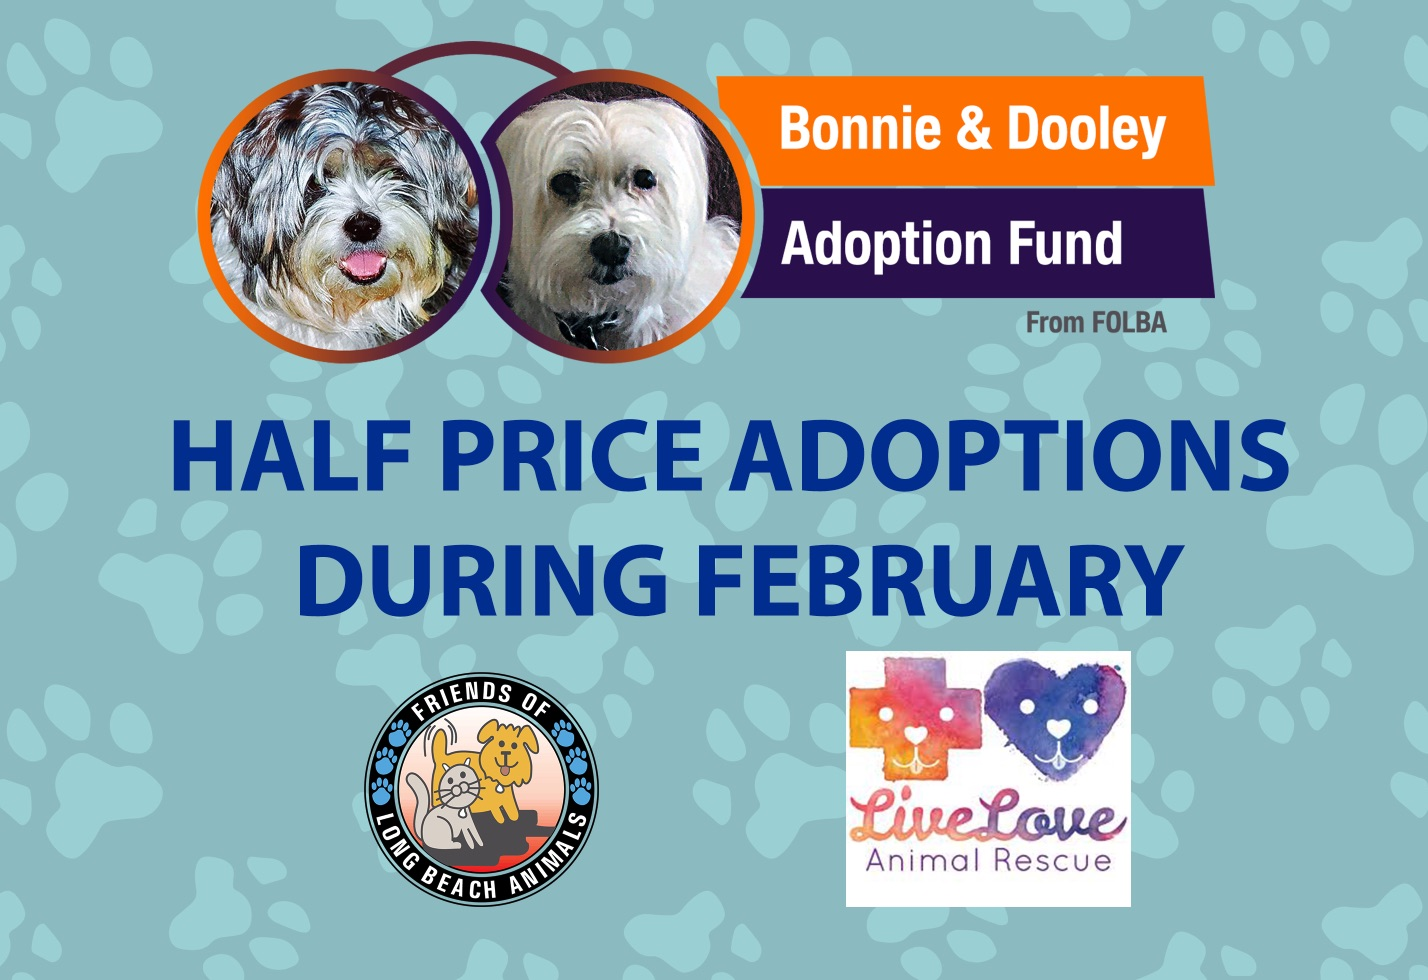 Half Priced Adoption Fees During February from FOLBA